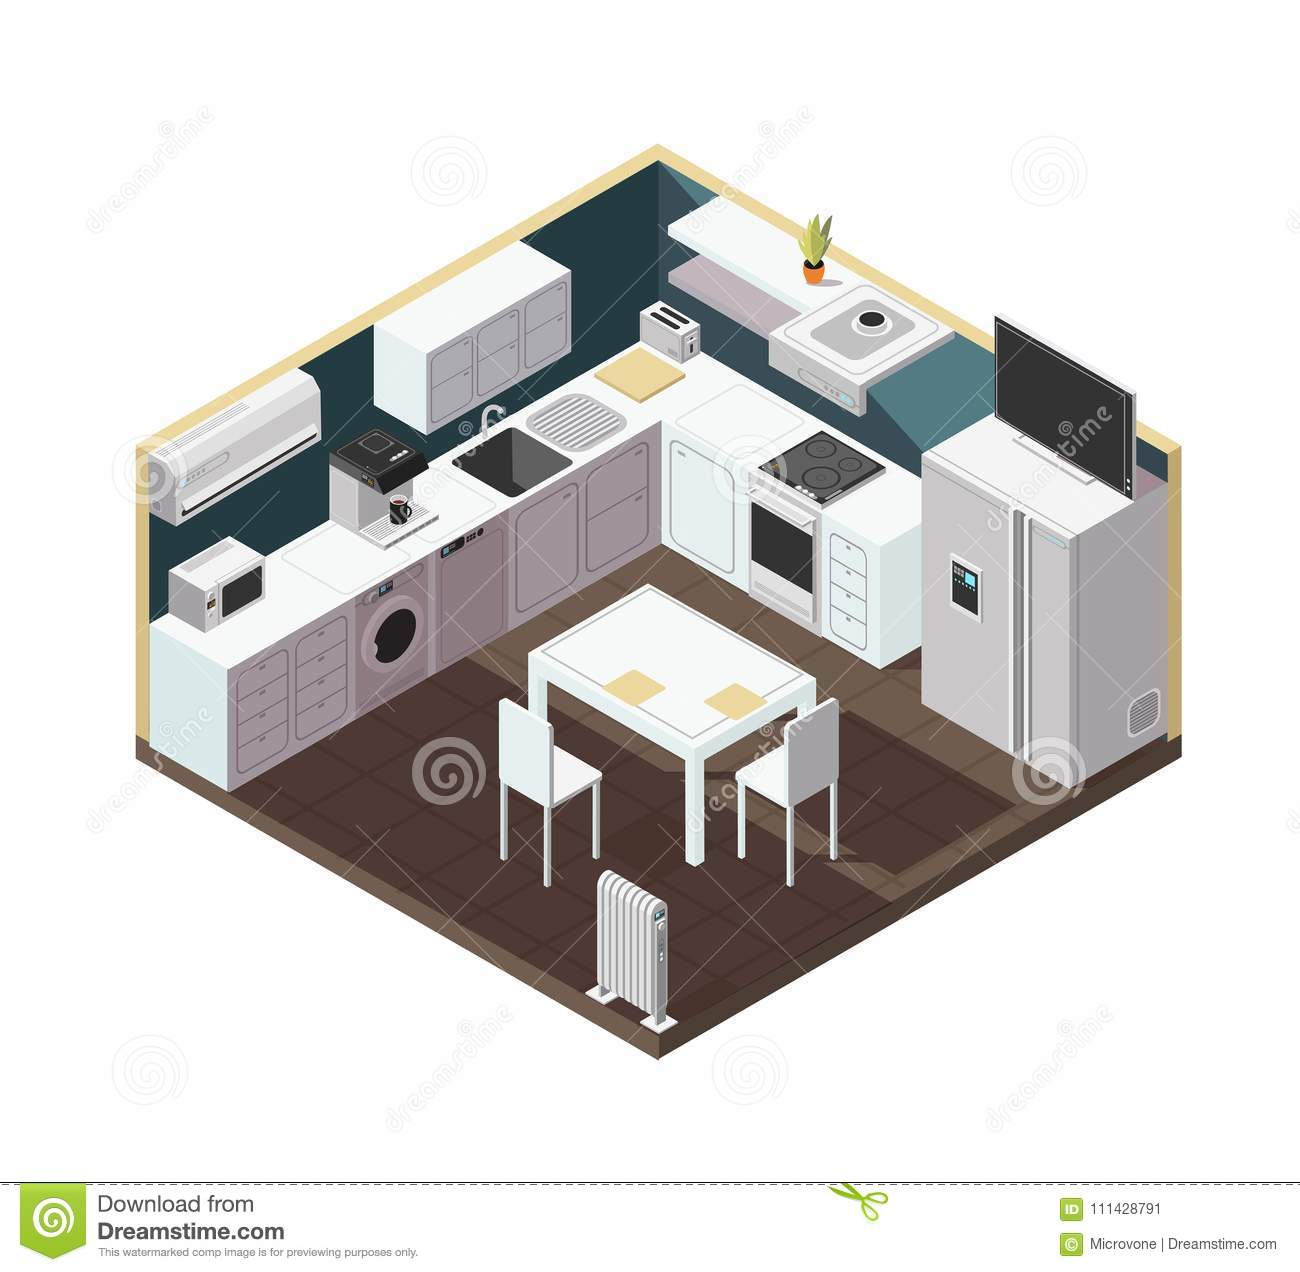 Isometric 3d Kitchen Interior With Household Appliance Equipment